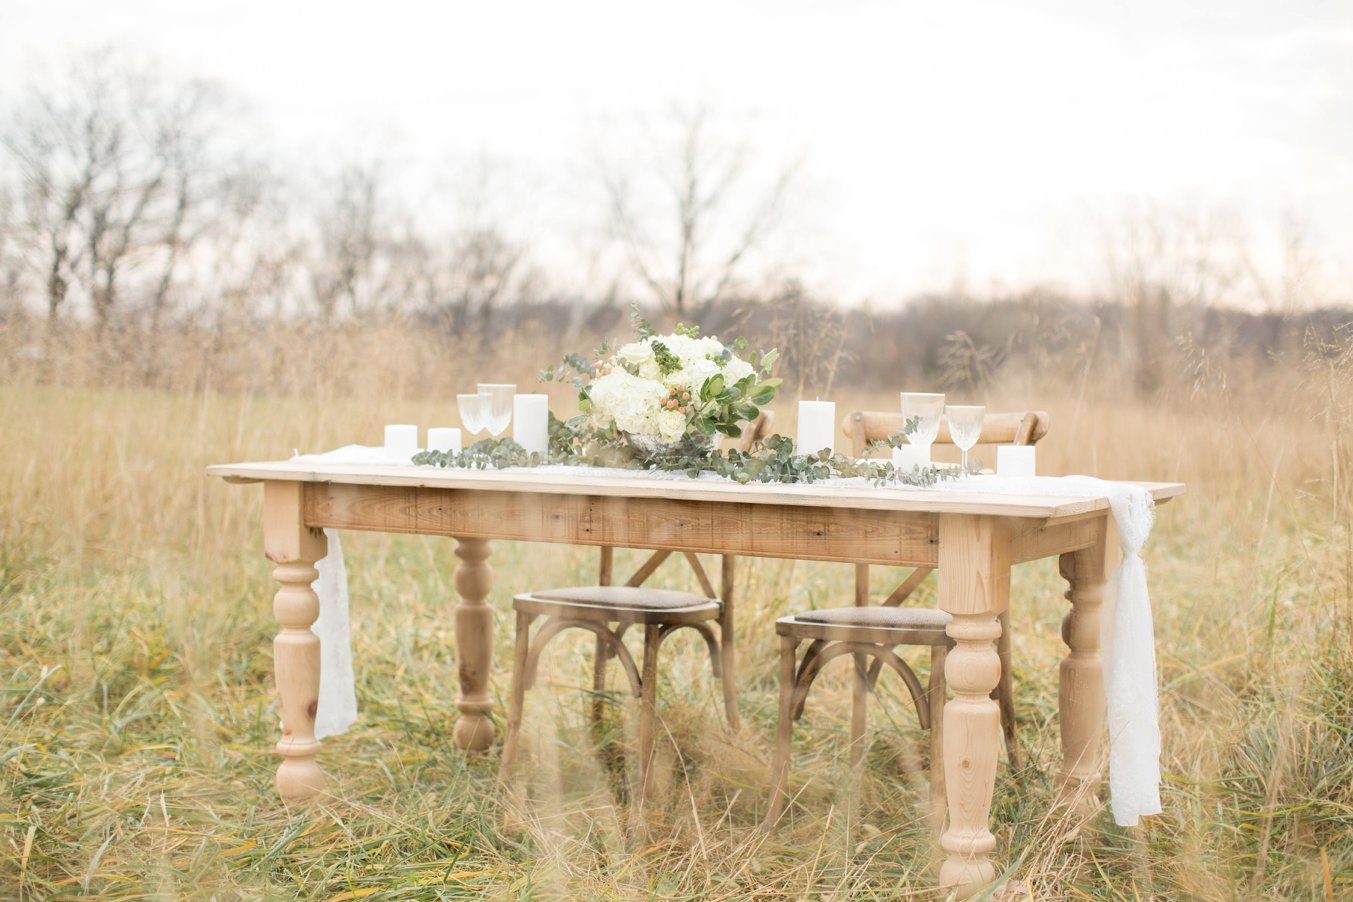 Farm table in field